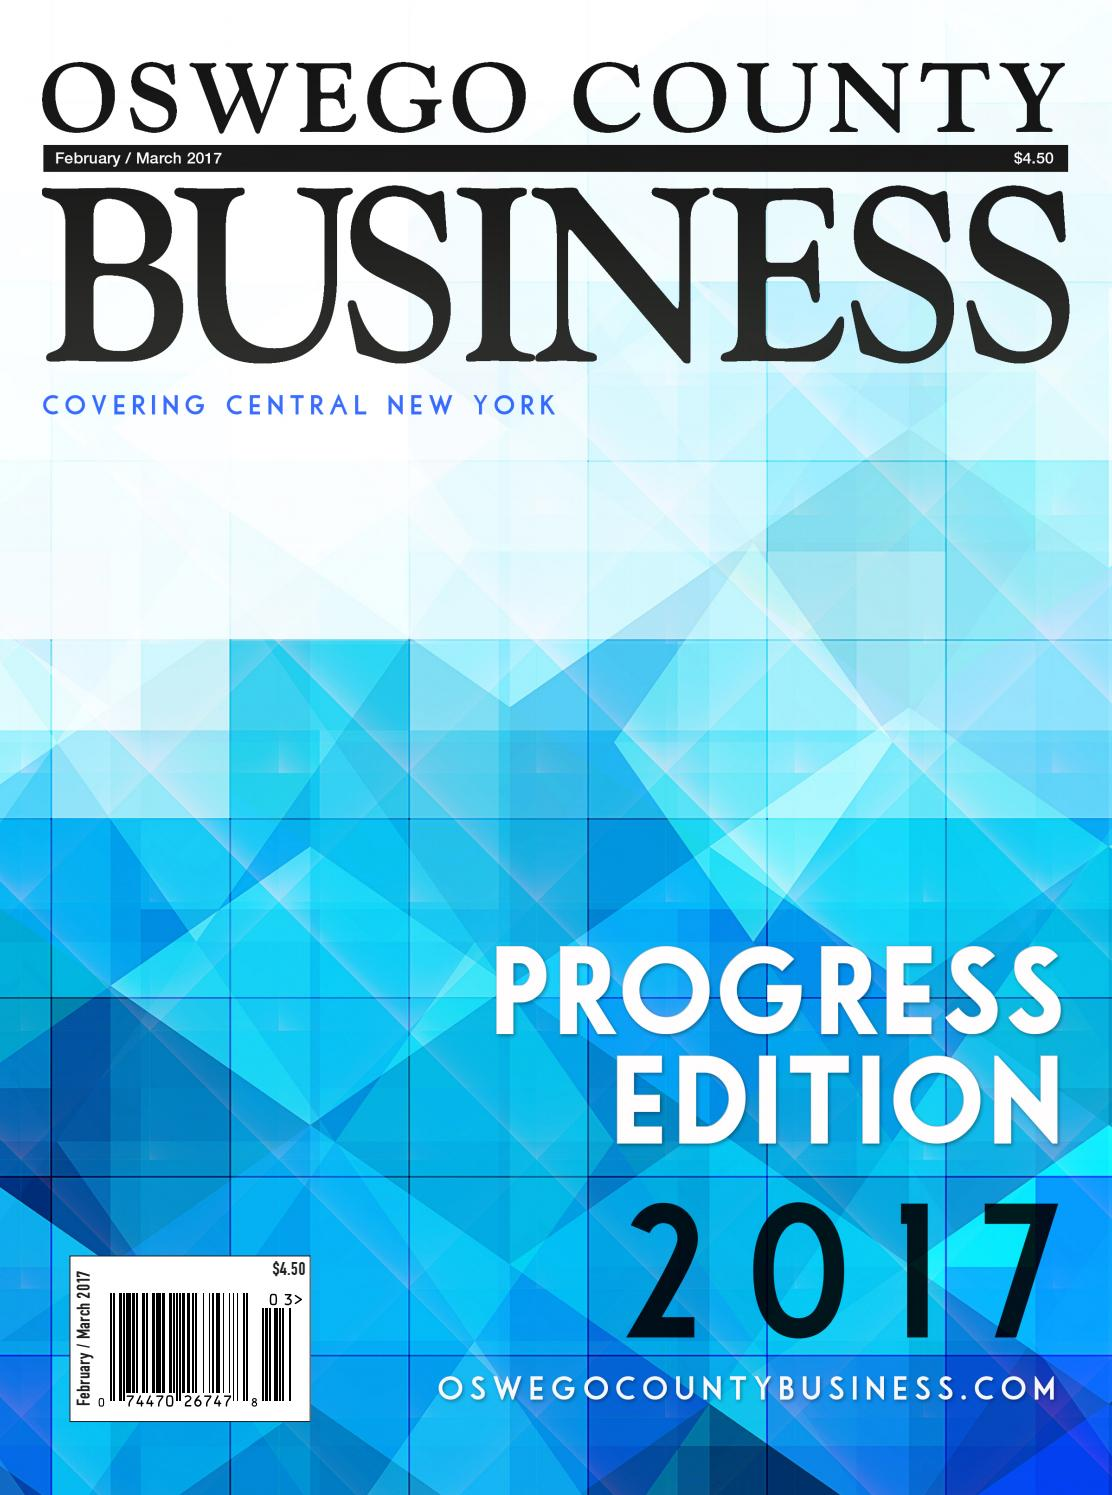 Oswego county business # 148 Feb-March 17 by Wagner Dotto - issuu